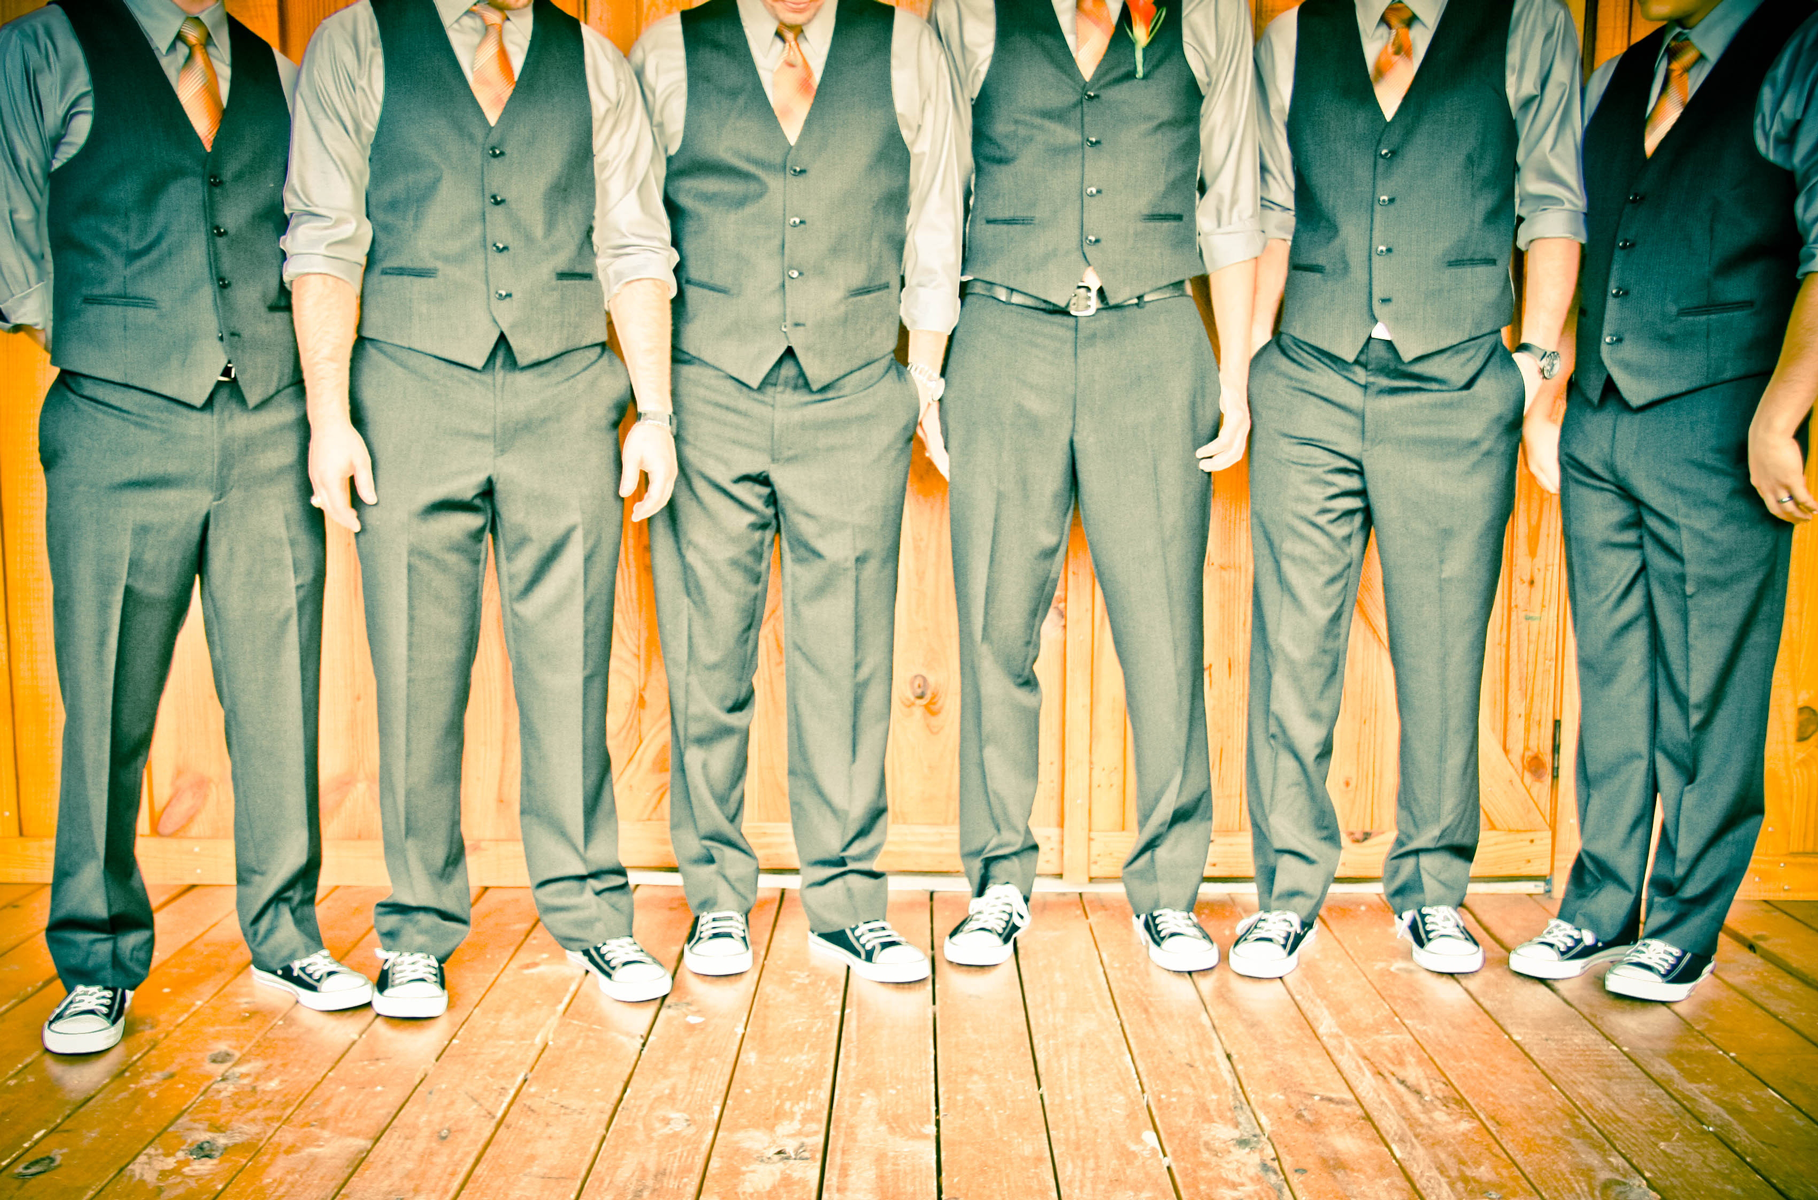 Grooms Attire. Uptown Weddings & Events, LLC (Event Planning and Design Services)